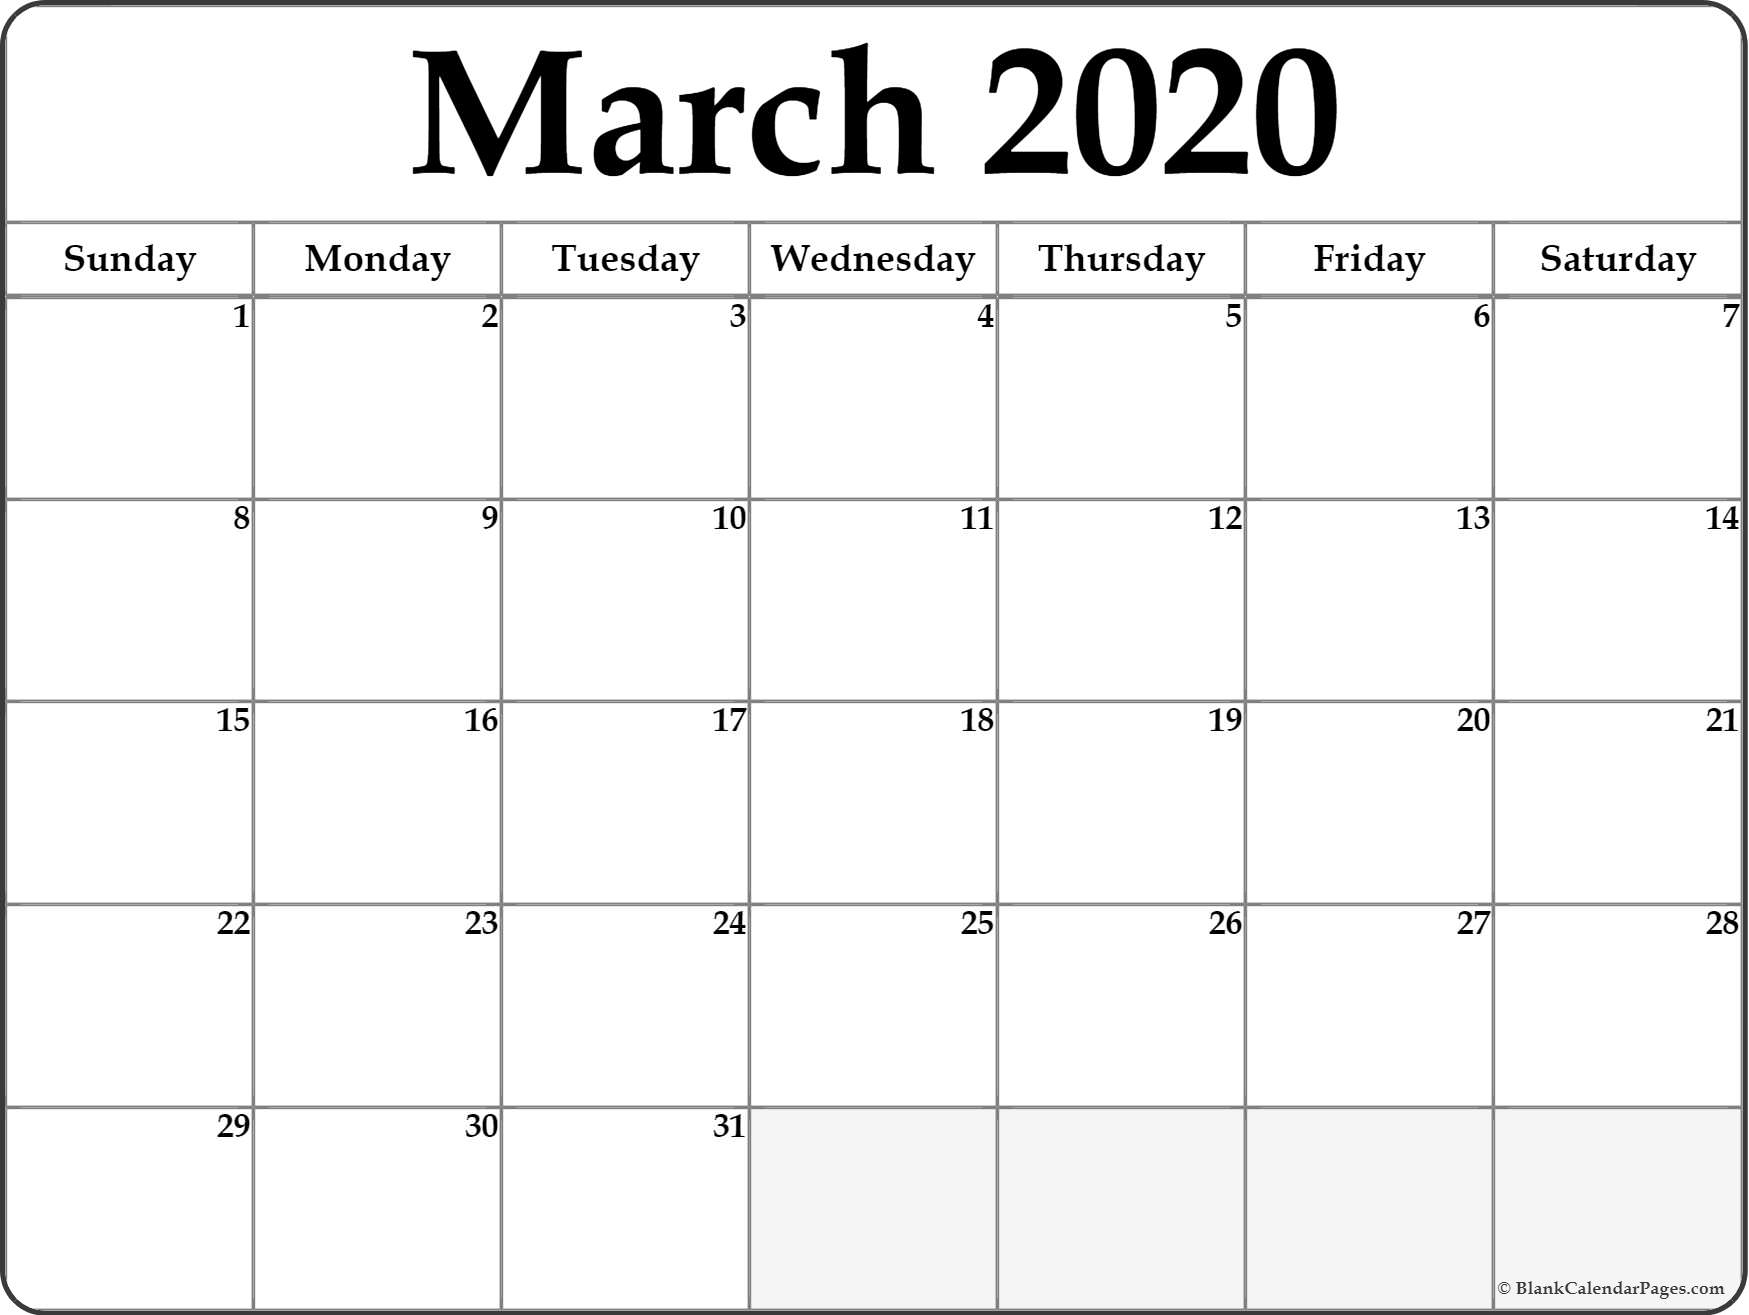 March 2020 Calendar | Free Printable Monthly Calendars within Writing Calendar For 2020